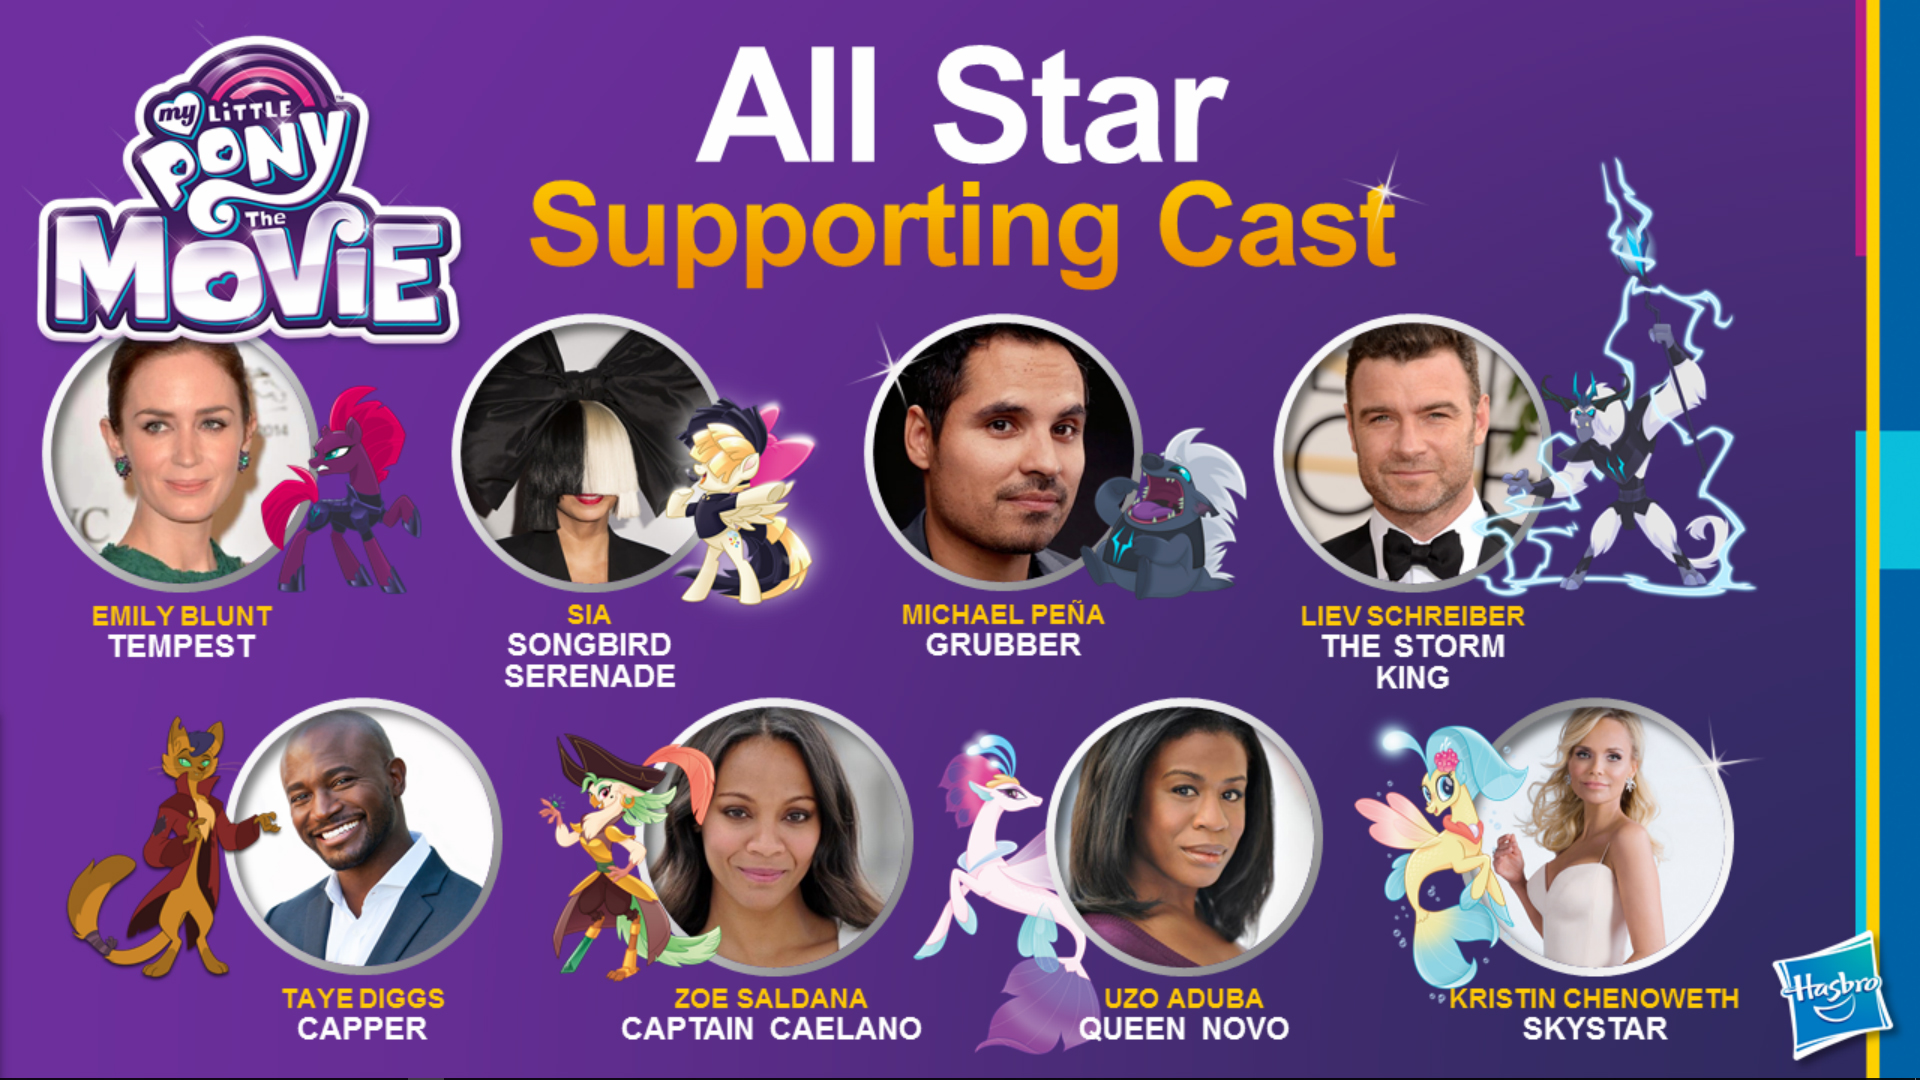 http://vignette2.wikia.nocookie.net/mlp/images/5/50/Toy_Fair_2017_Investor_Presentation_-_MLP_The_Movie_All_Star_Supporting_Cast.jpg/revision/latest?cb=20170217160825